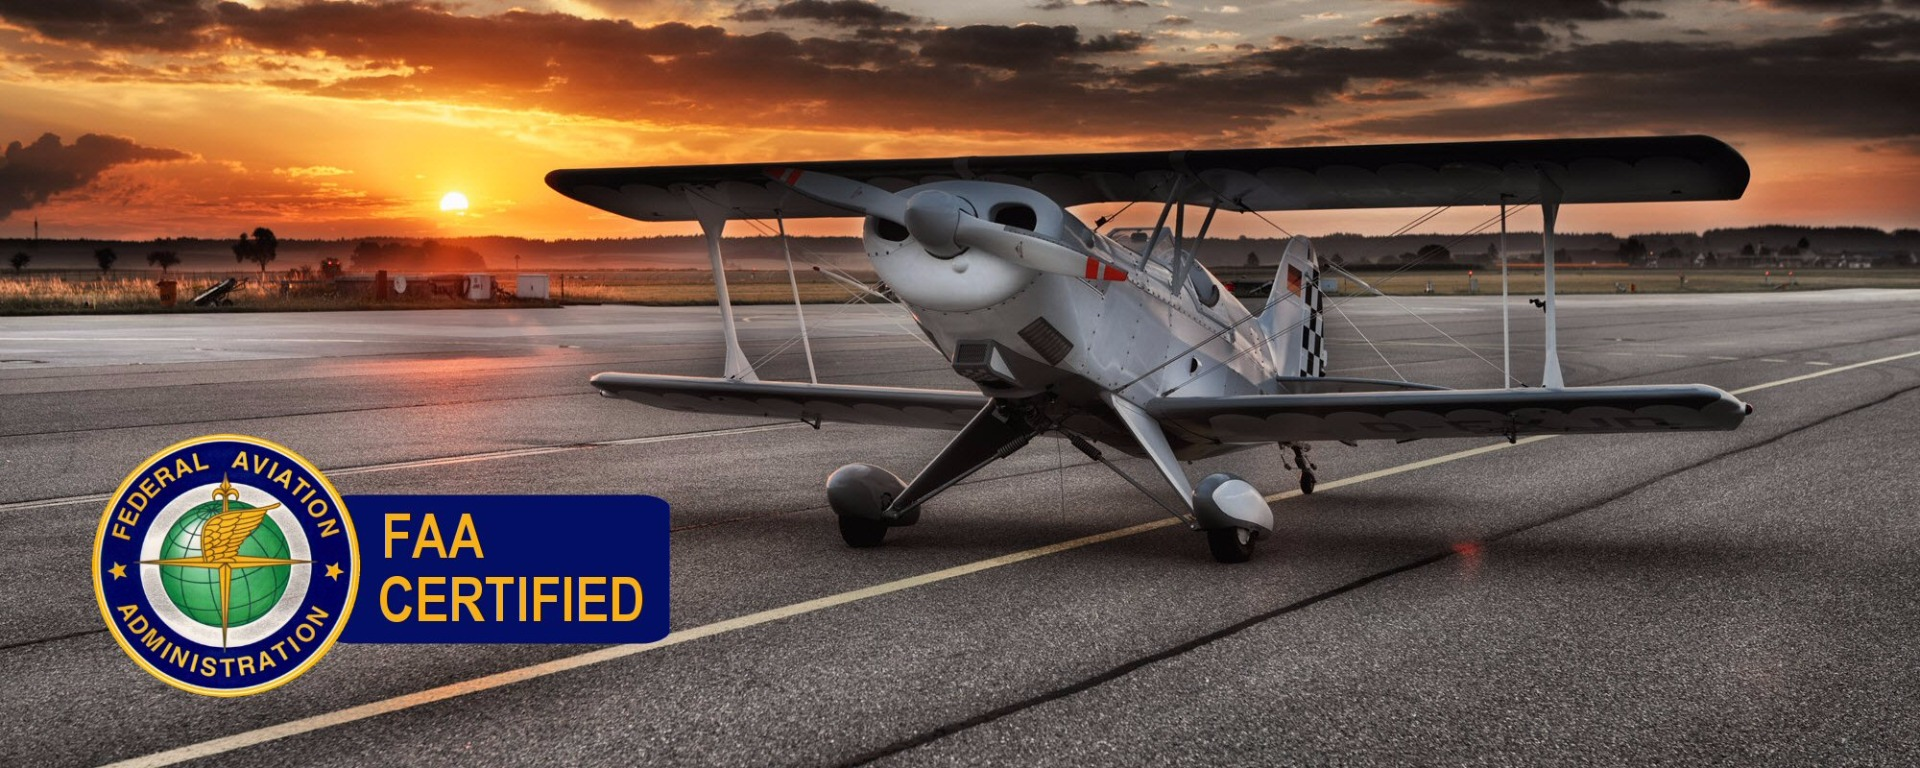 Aerospace Welding Inc - Aviation Aircraft Exhaust and Engine